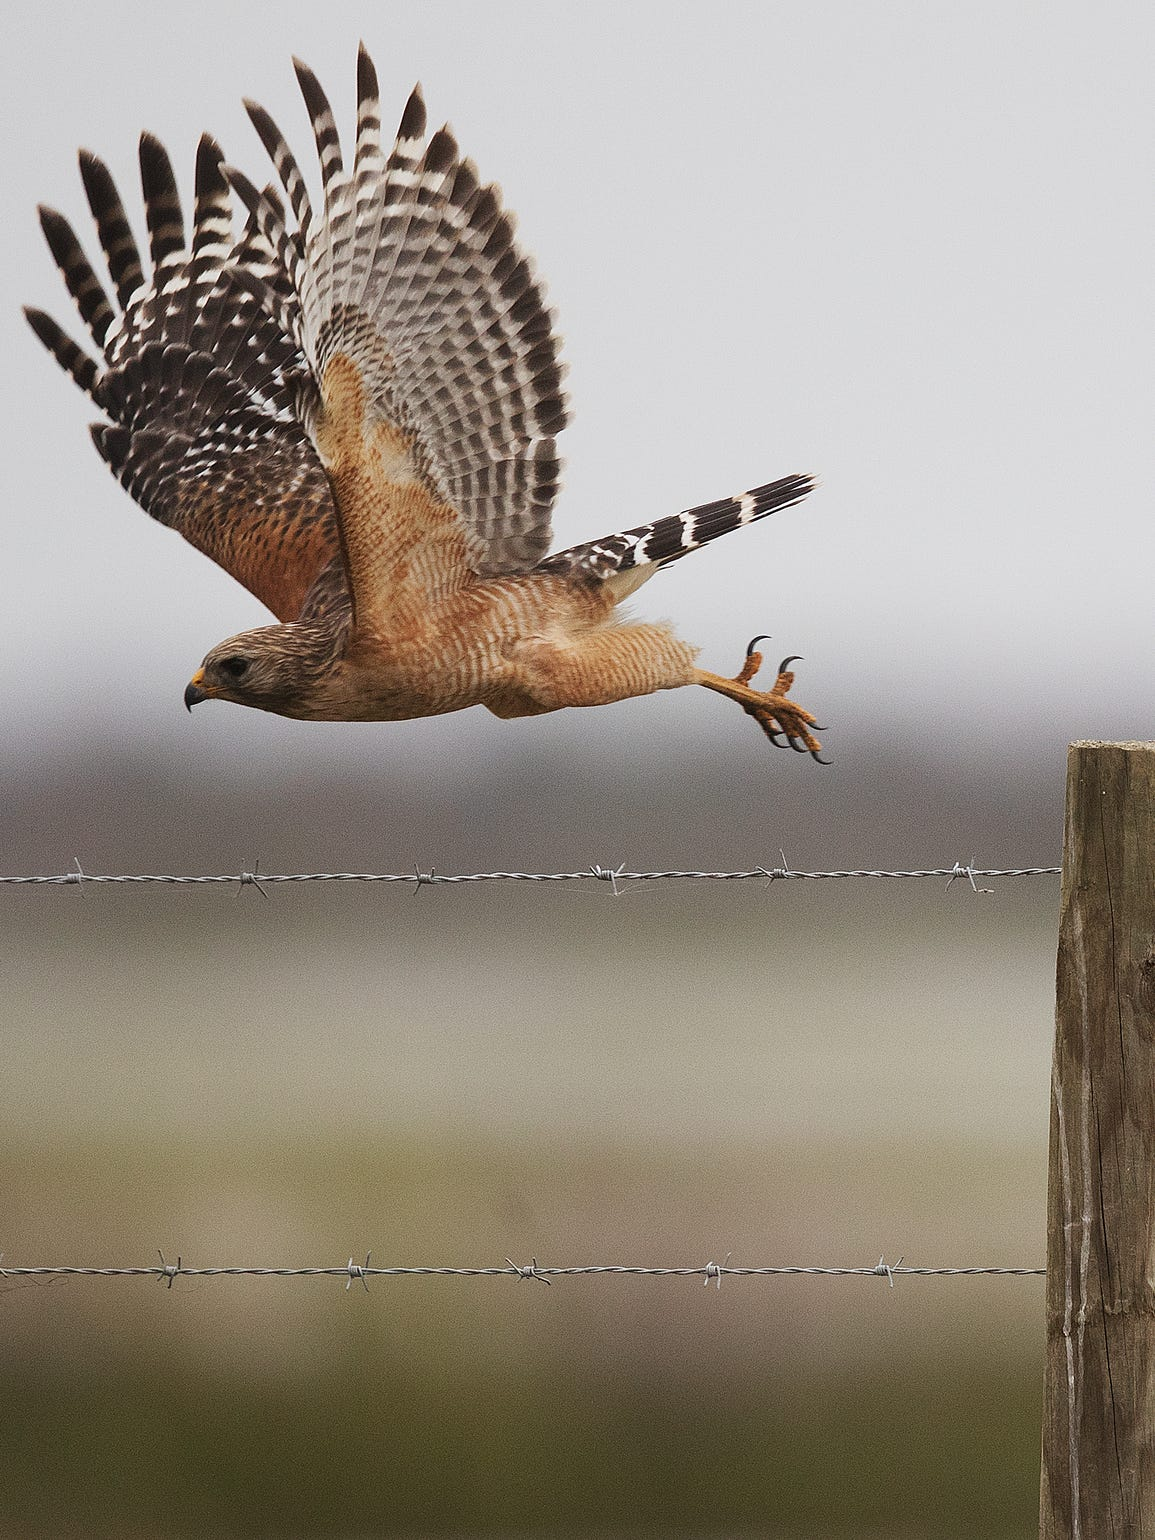 A red shouldered hawk takes flight off of a fence post